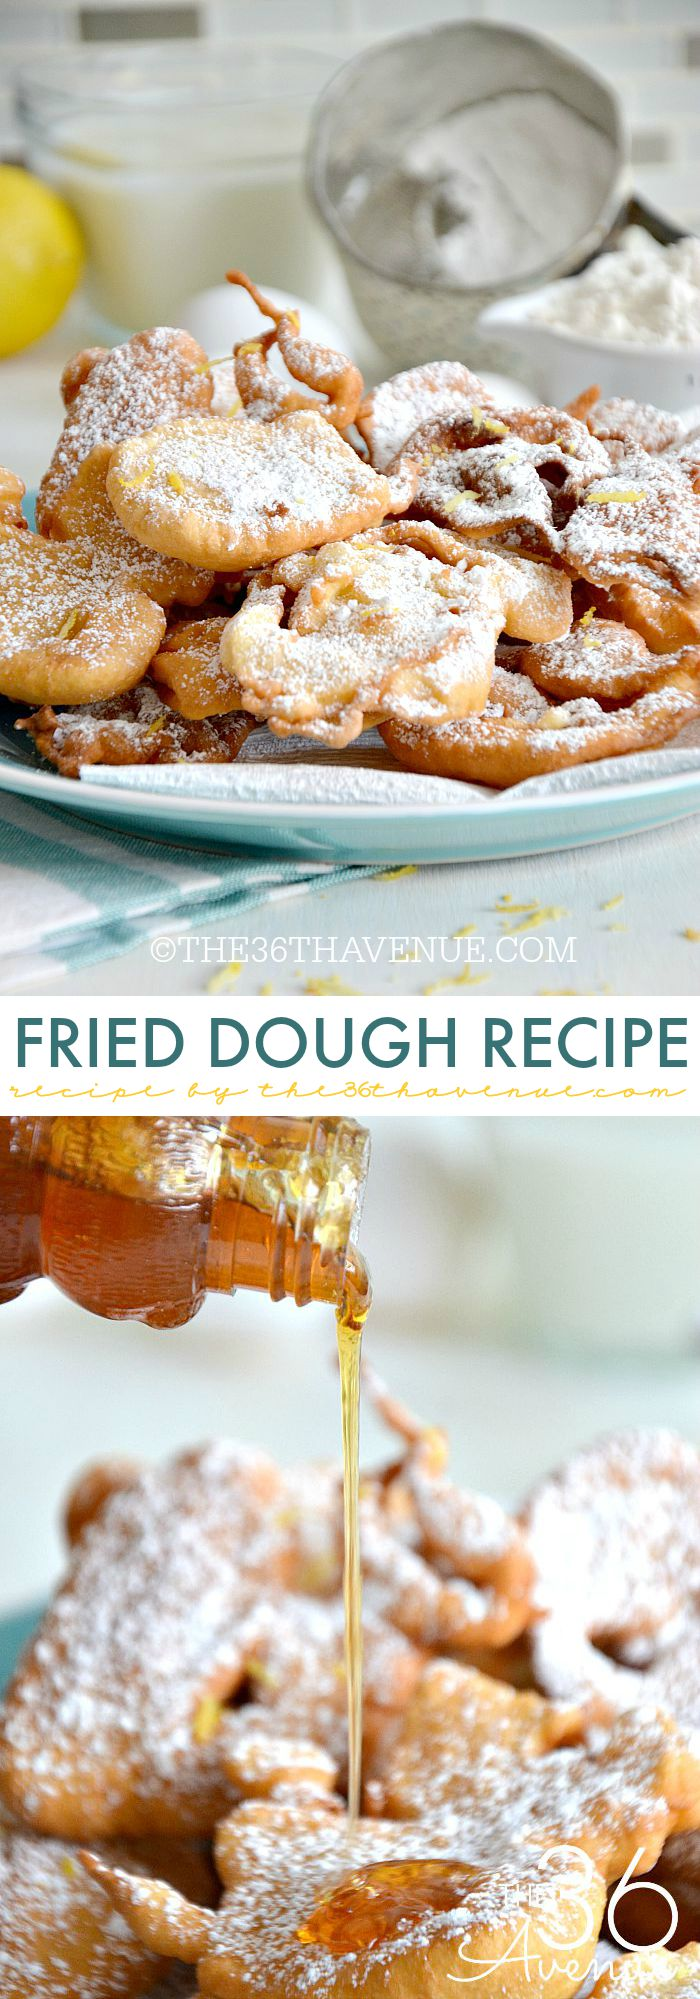 Recipe - Fried Dough Recipe... Such a yummy treat! Read more here https://www.the36thavenue.com/fried-dough-recipe/ ‎